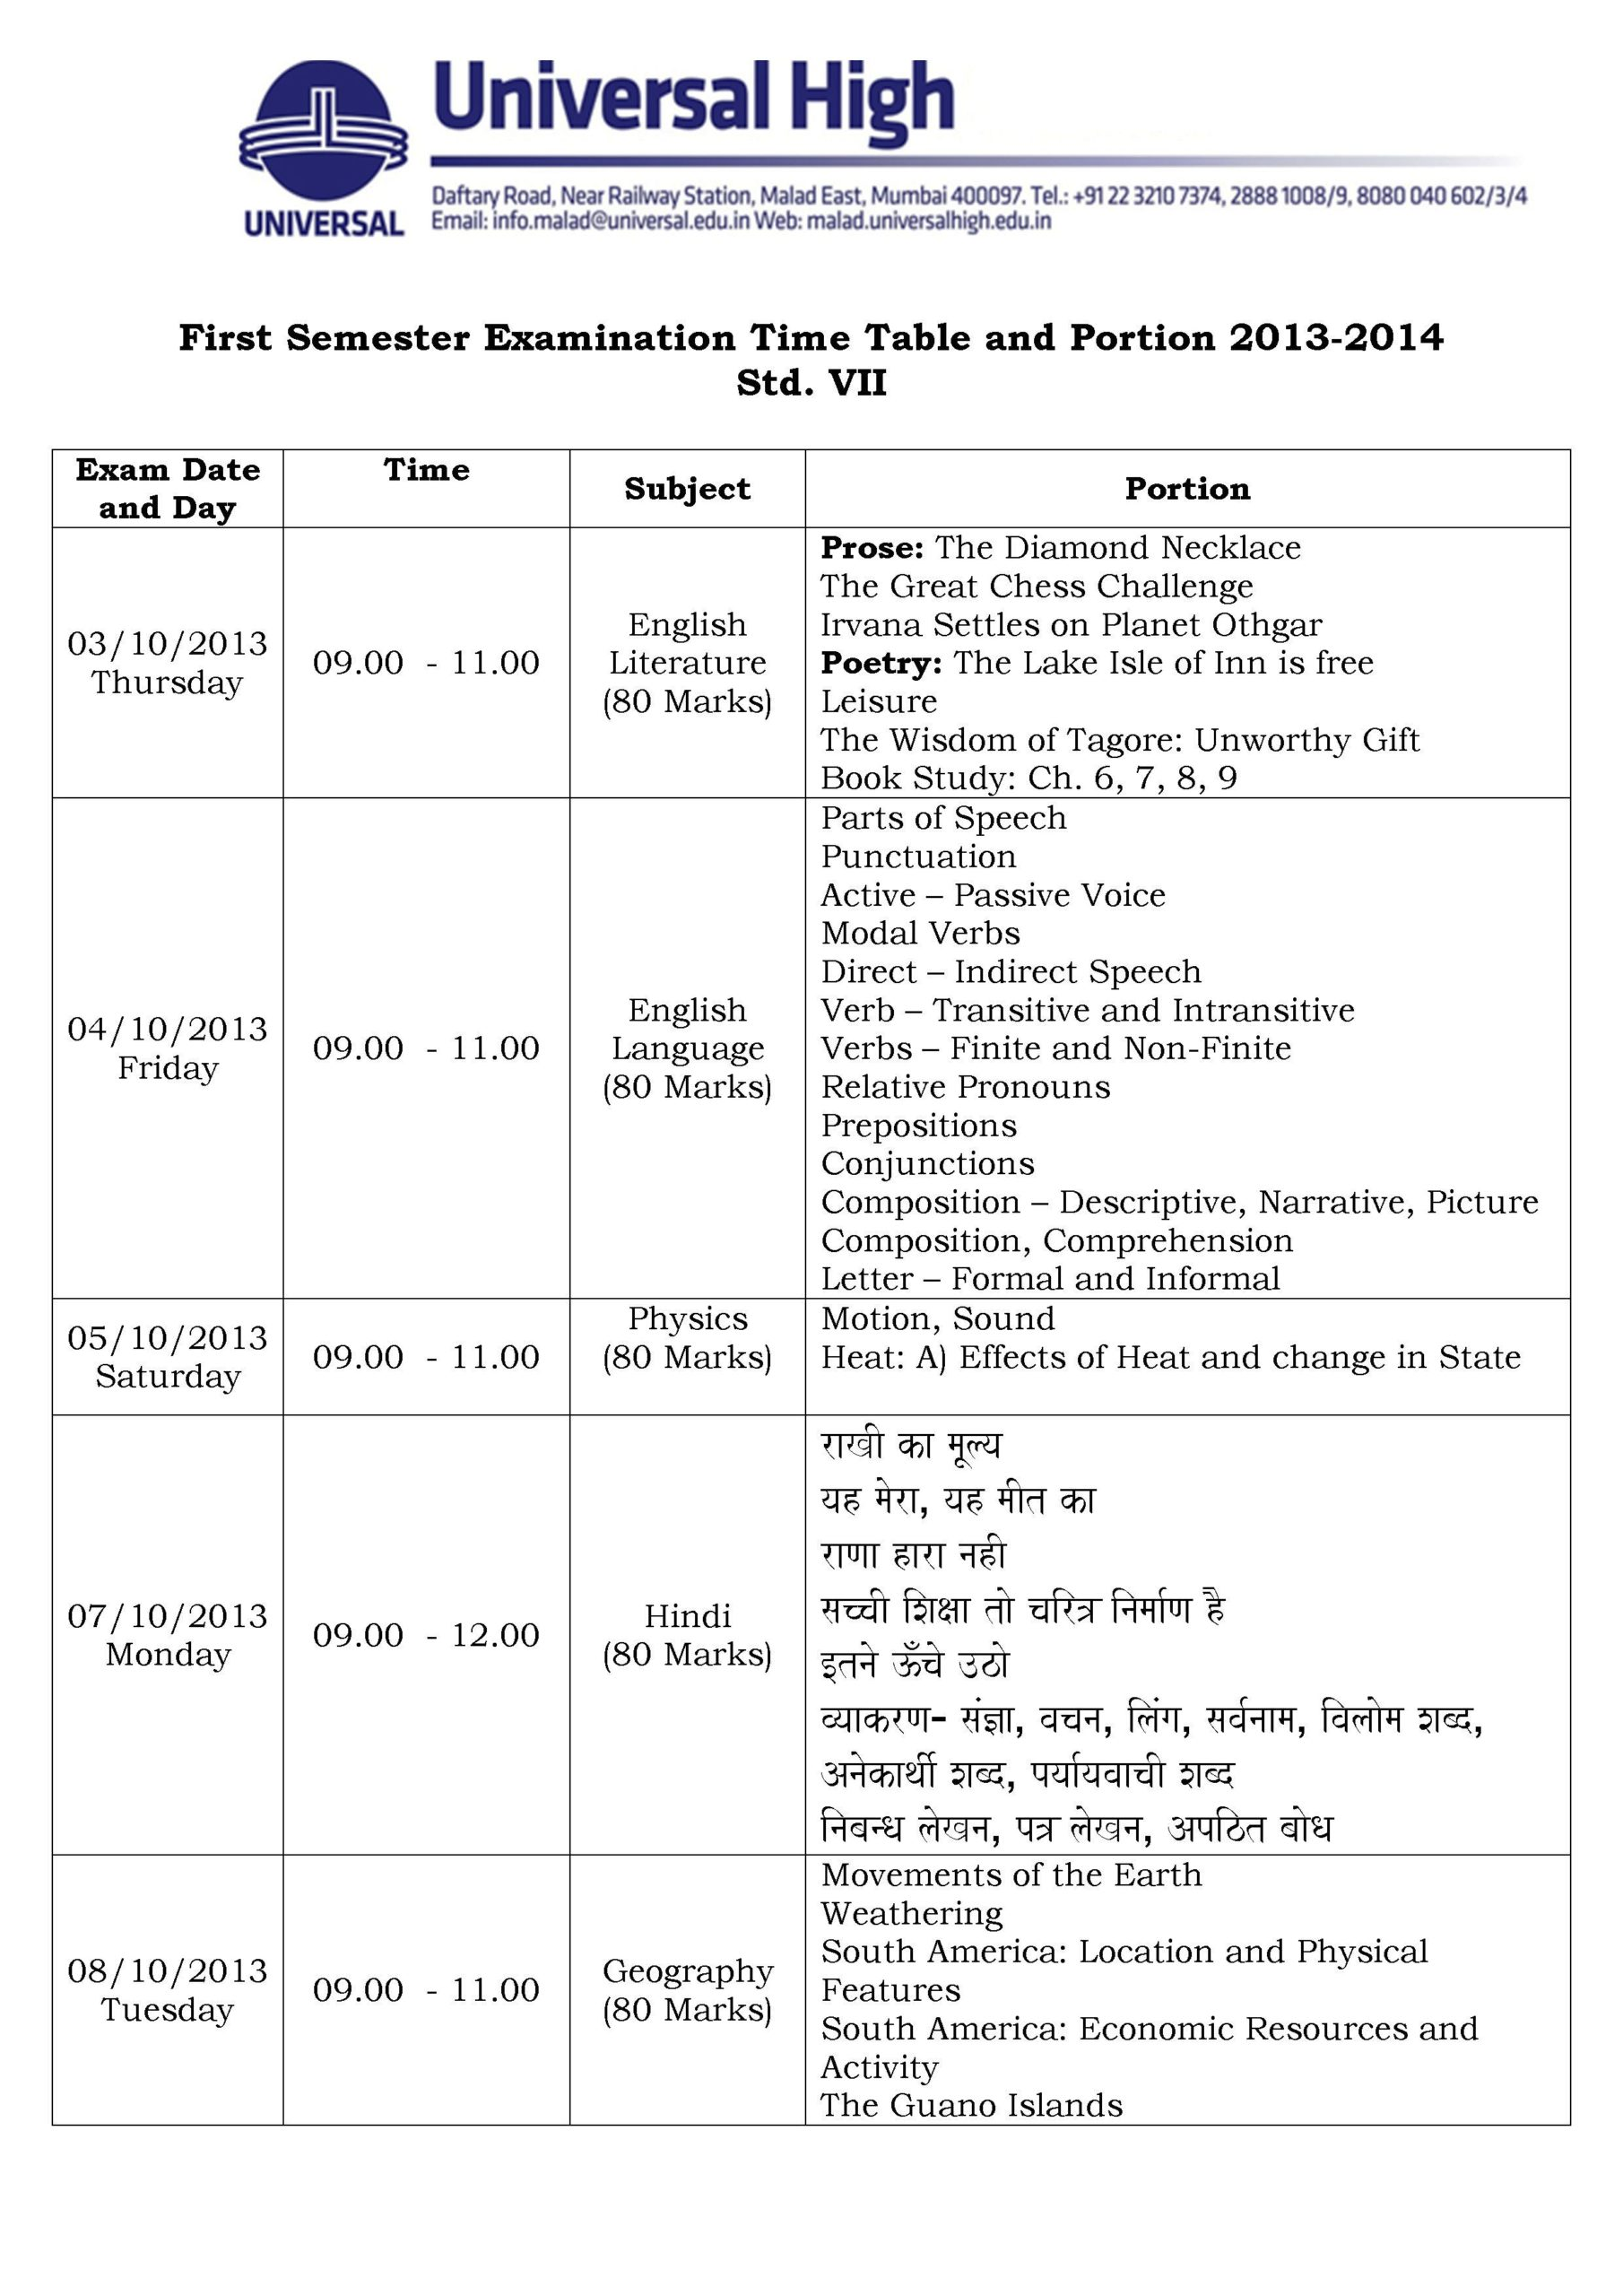 ... . VII – First Semester Examination Time Table and Portion 2013-2014